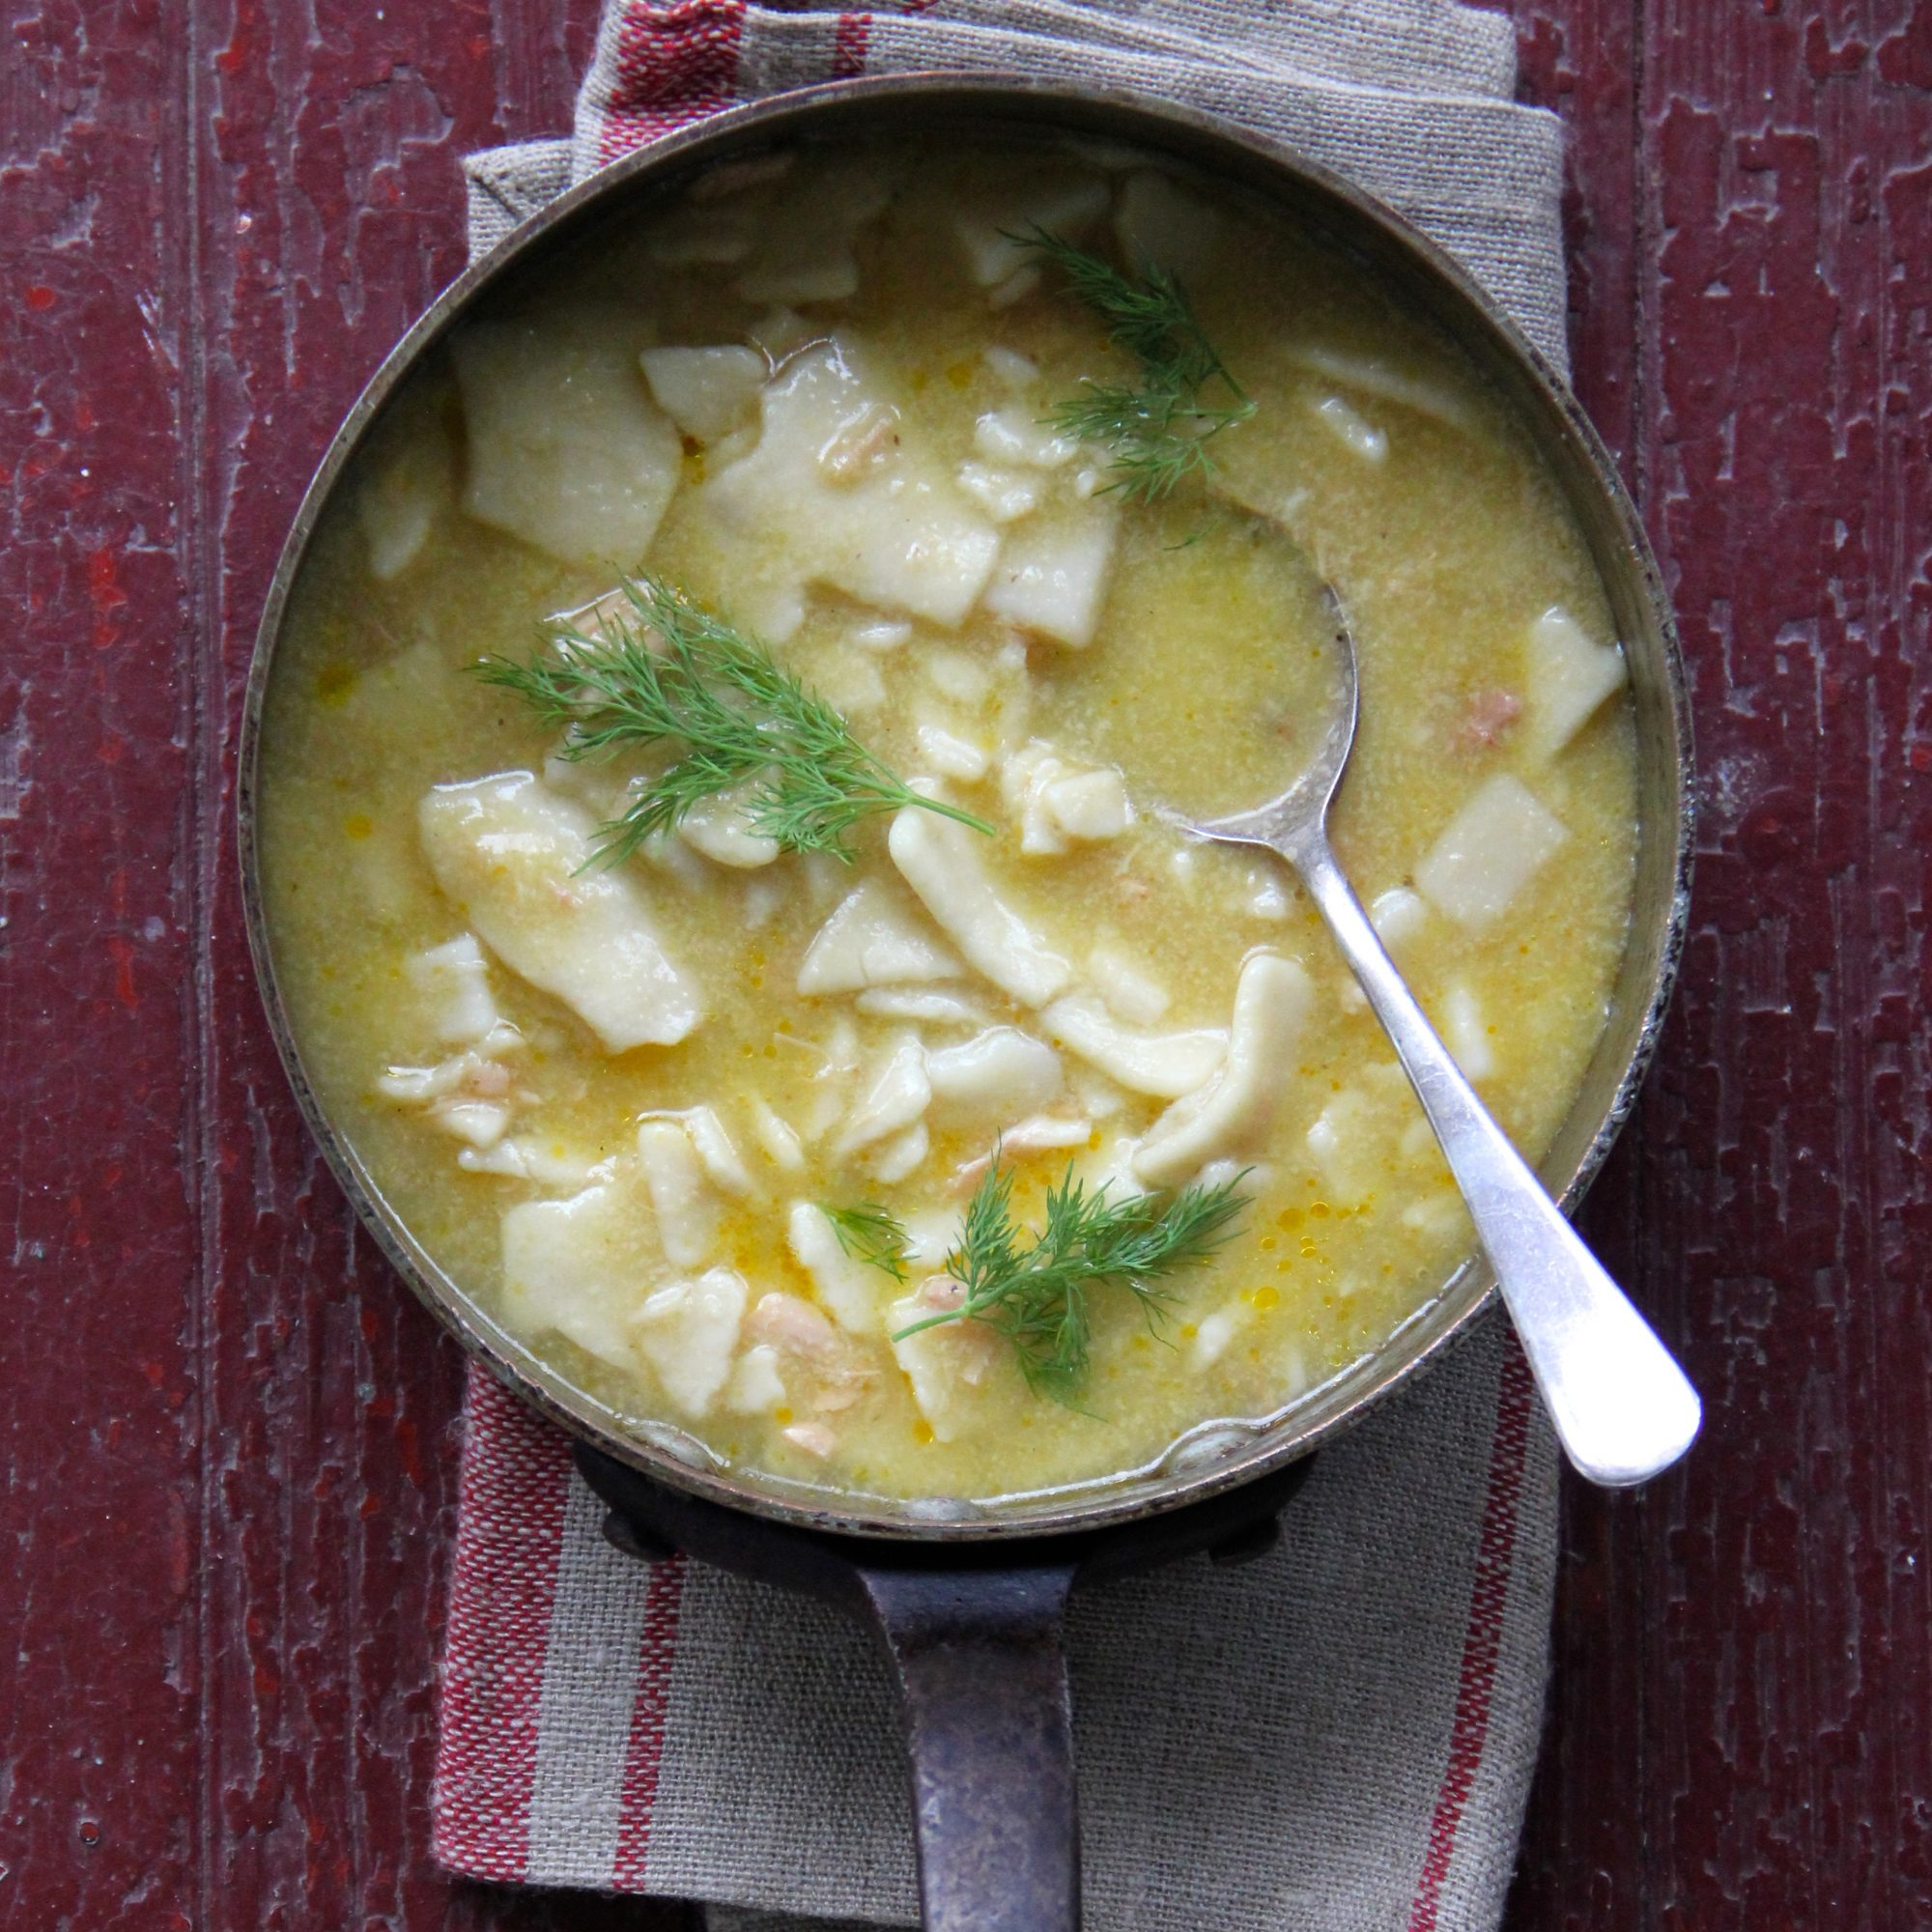 Pennsylvania Dutch Chicken Noodle Soup